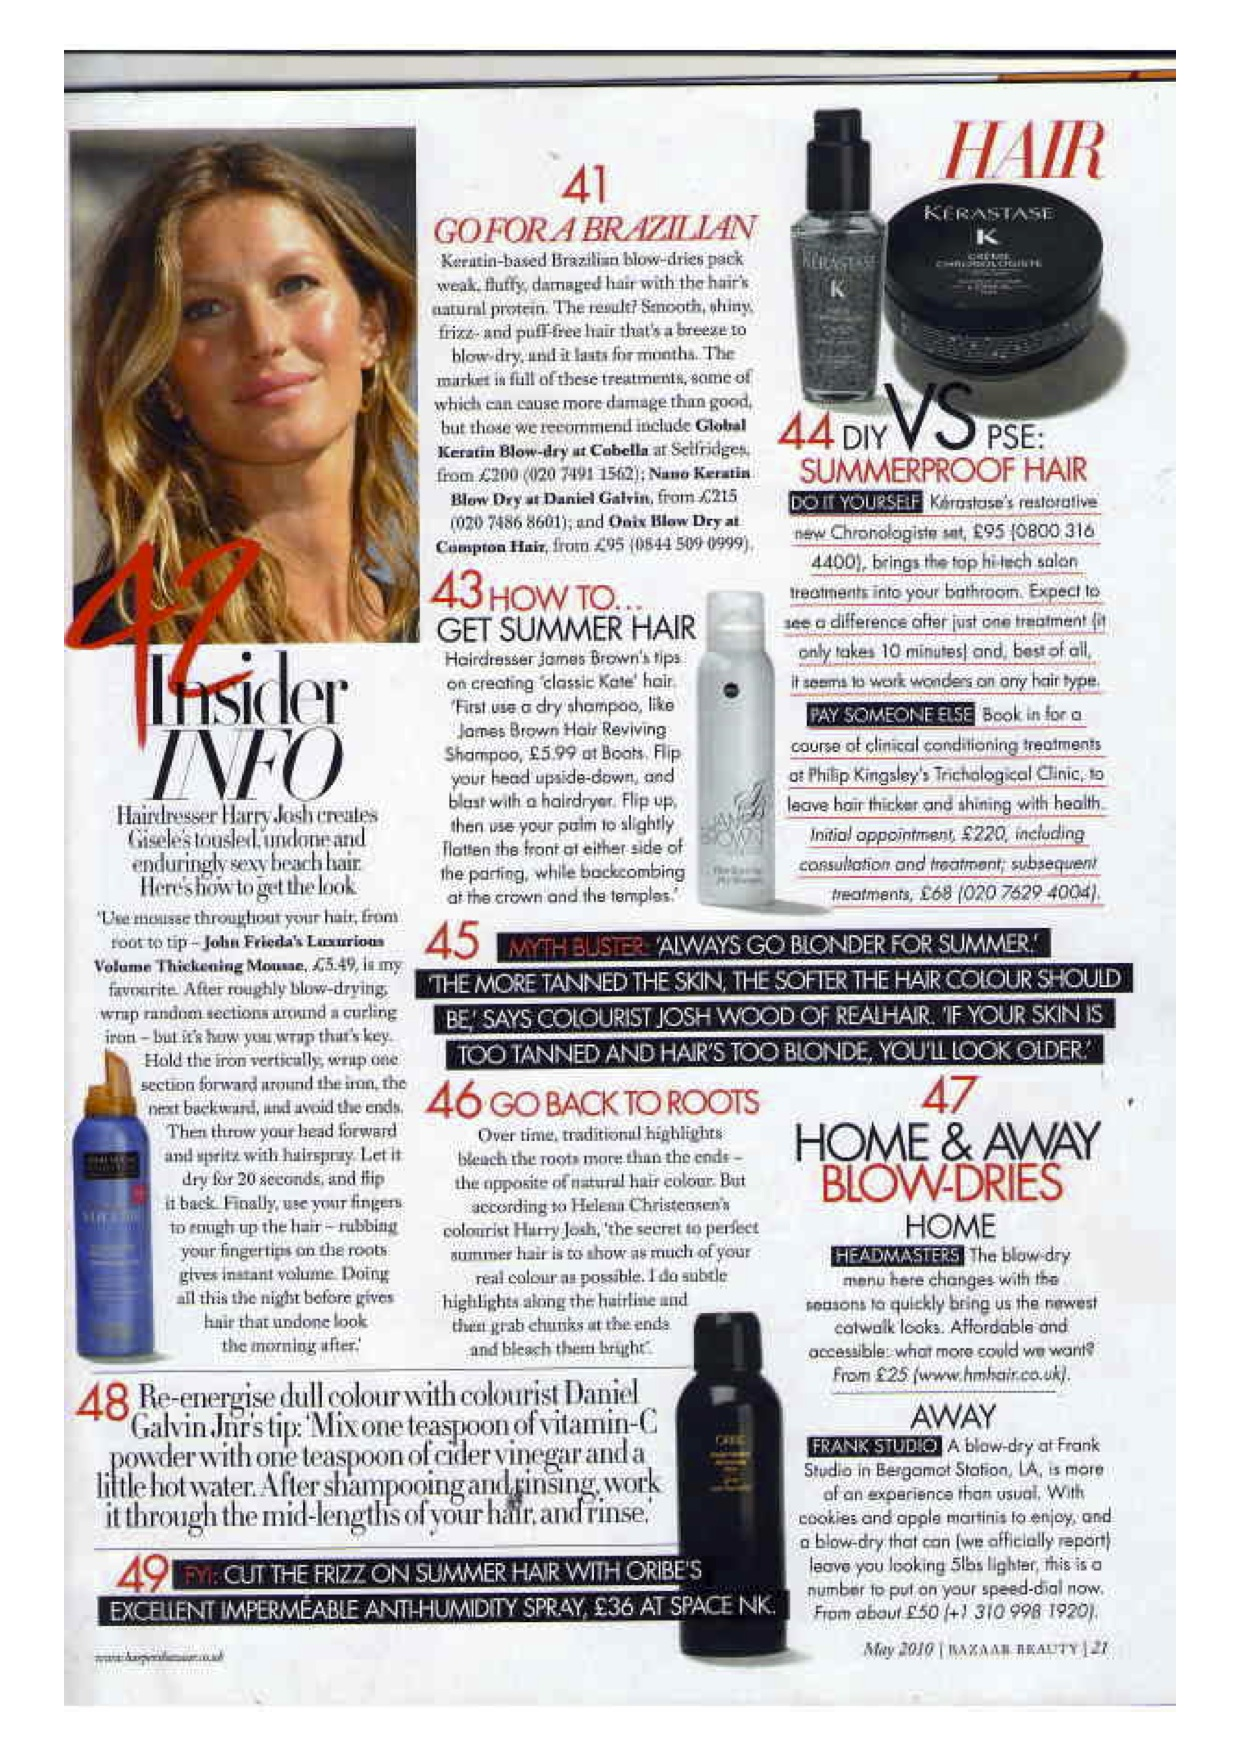 Harpers Bazaar Mentions Zoltan Zoltan Hair Texture London